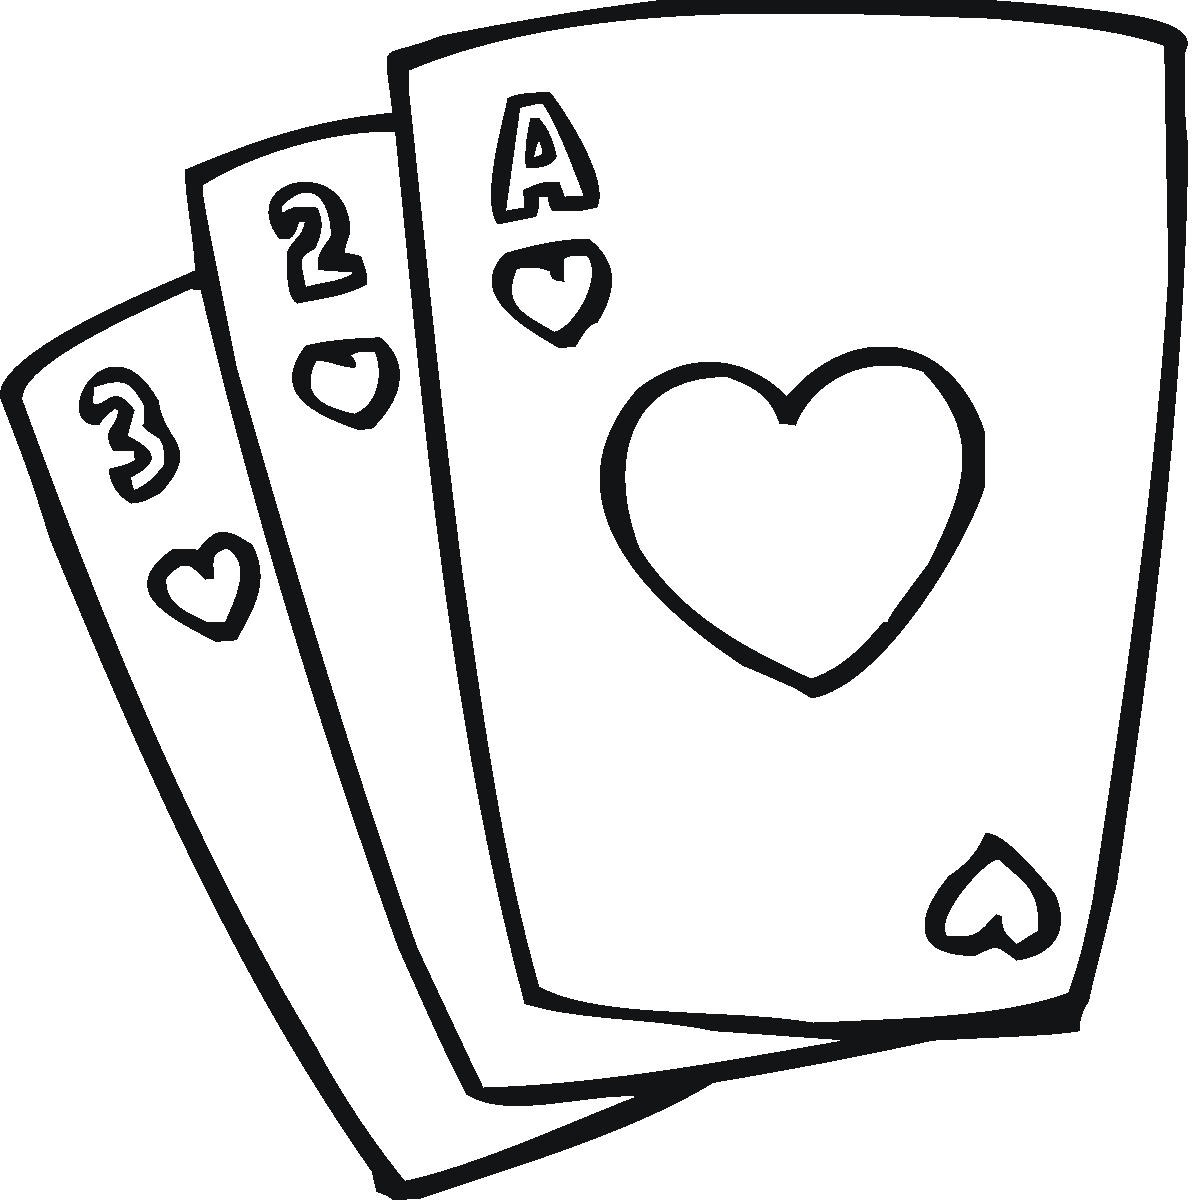 Deck clipart #2, Download drawings